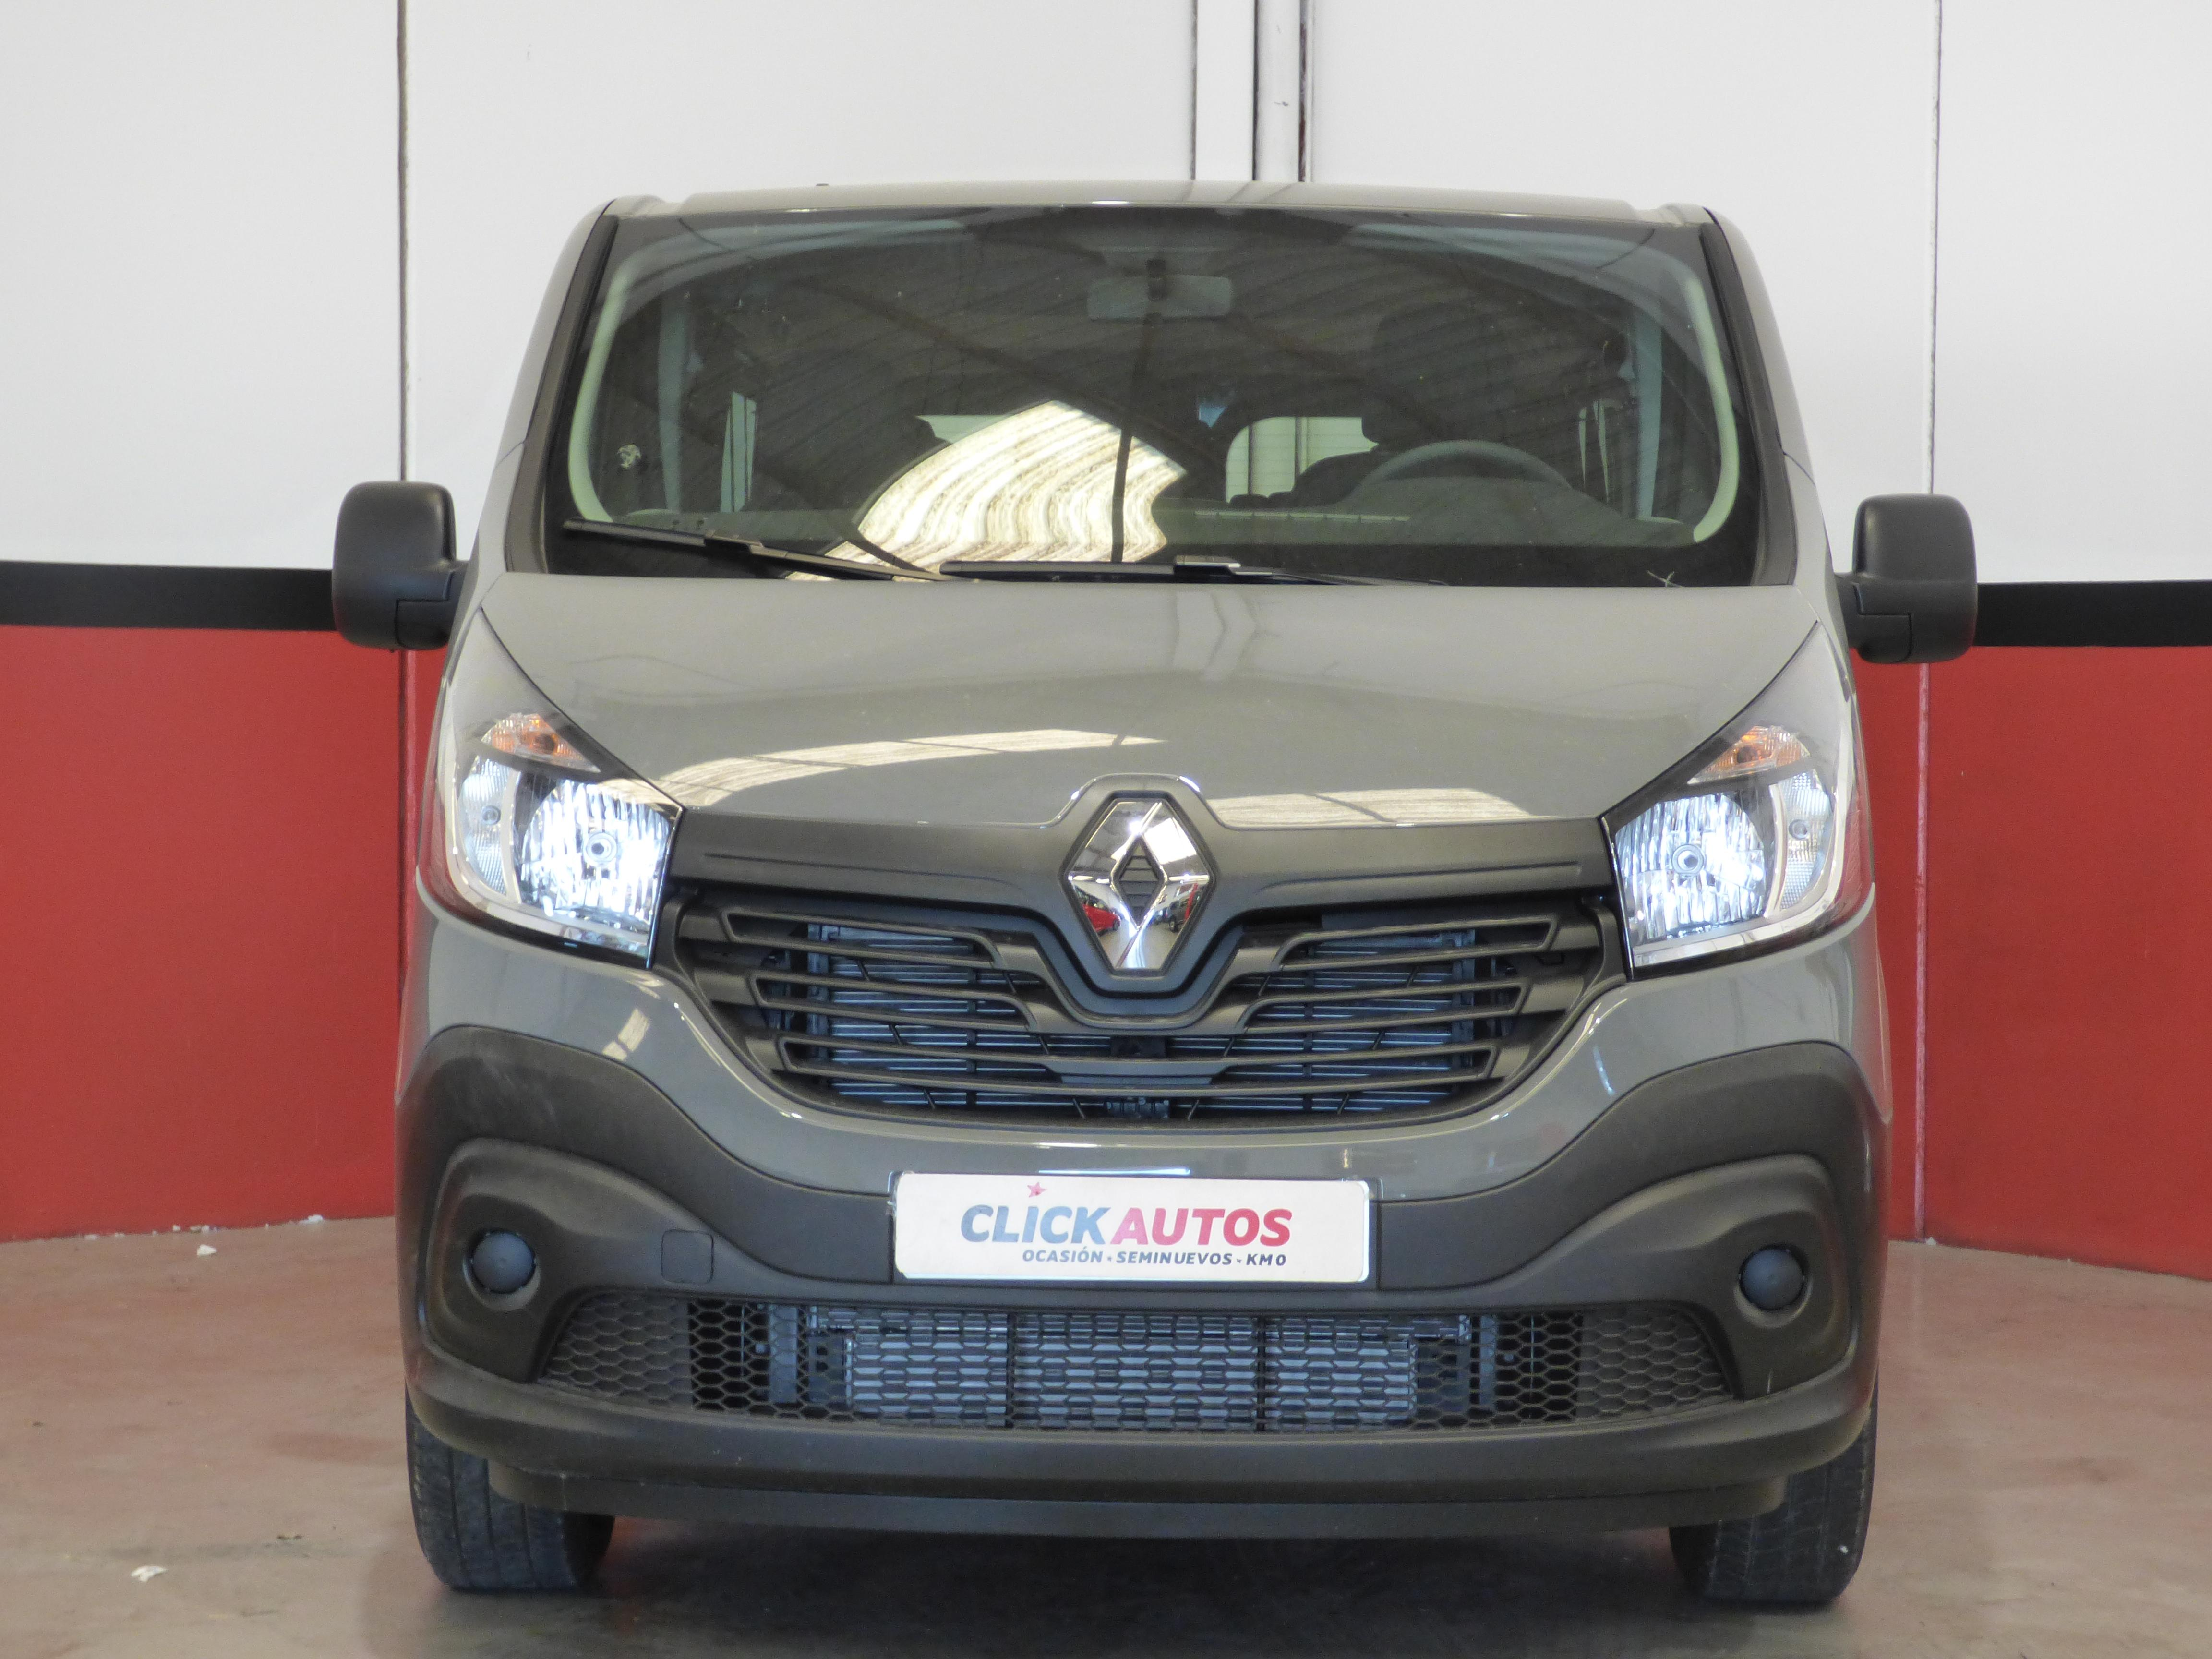 Traffic 1.6 DCI 120CV Combi 9 Energy Largo 1